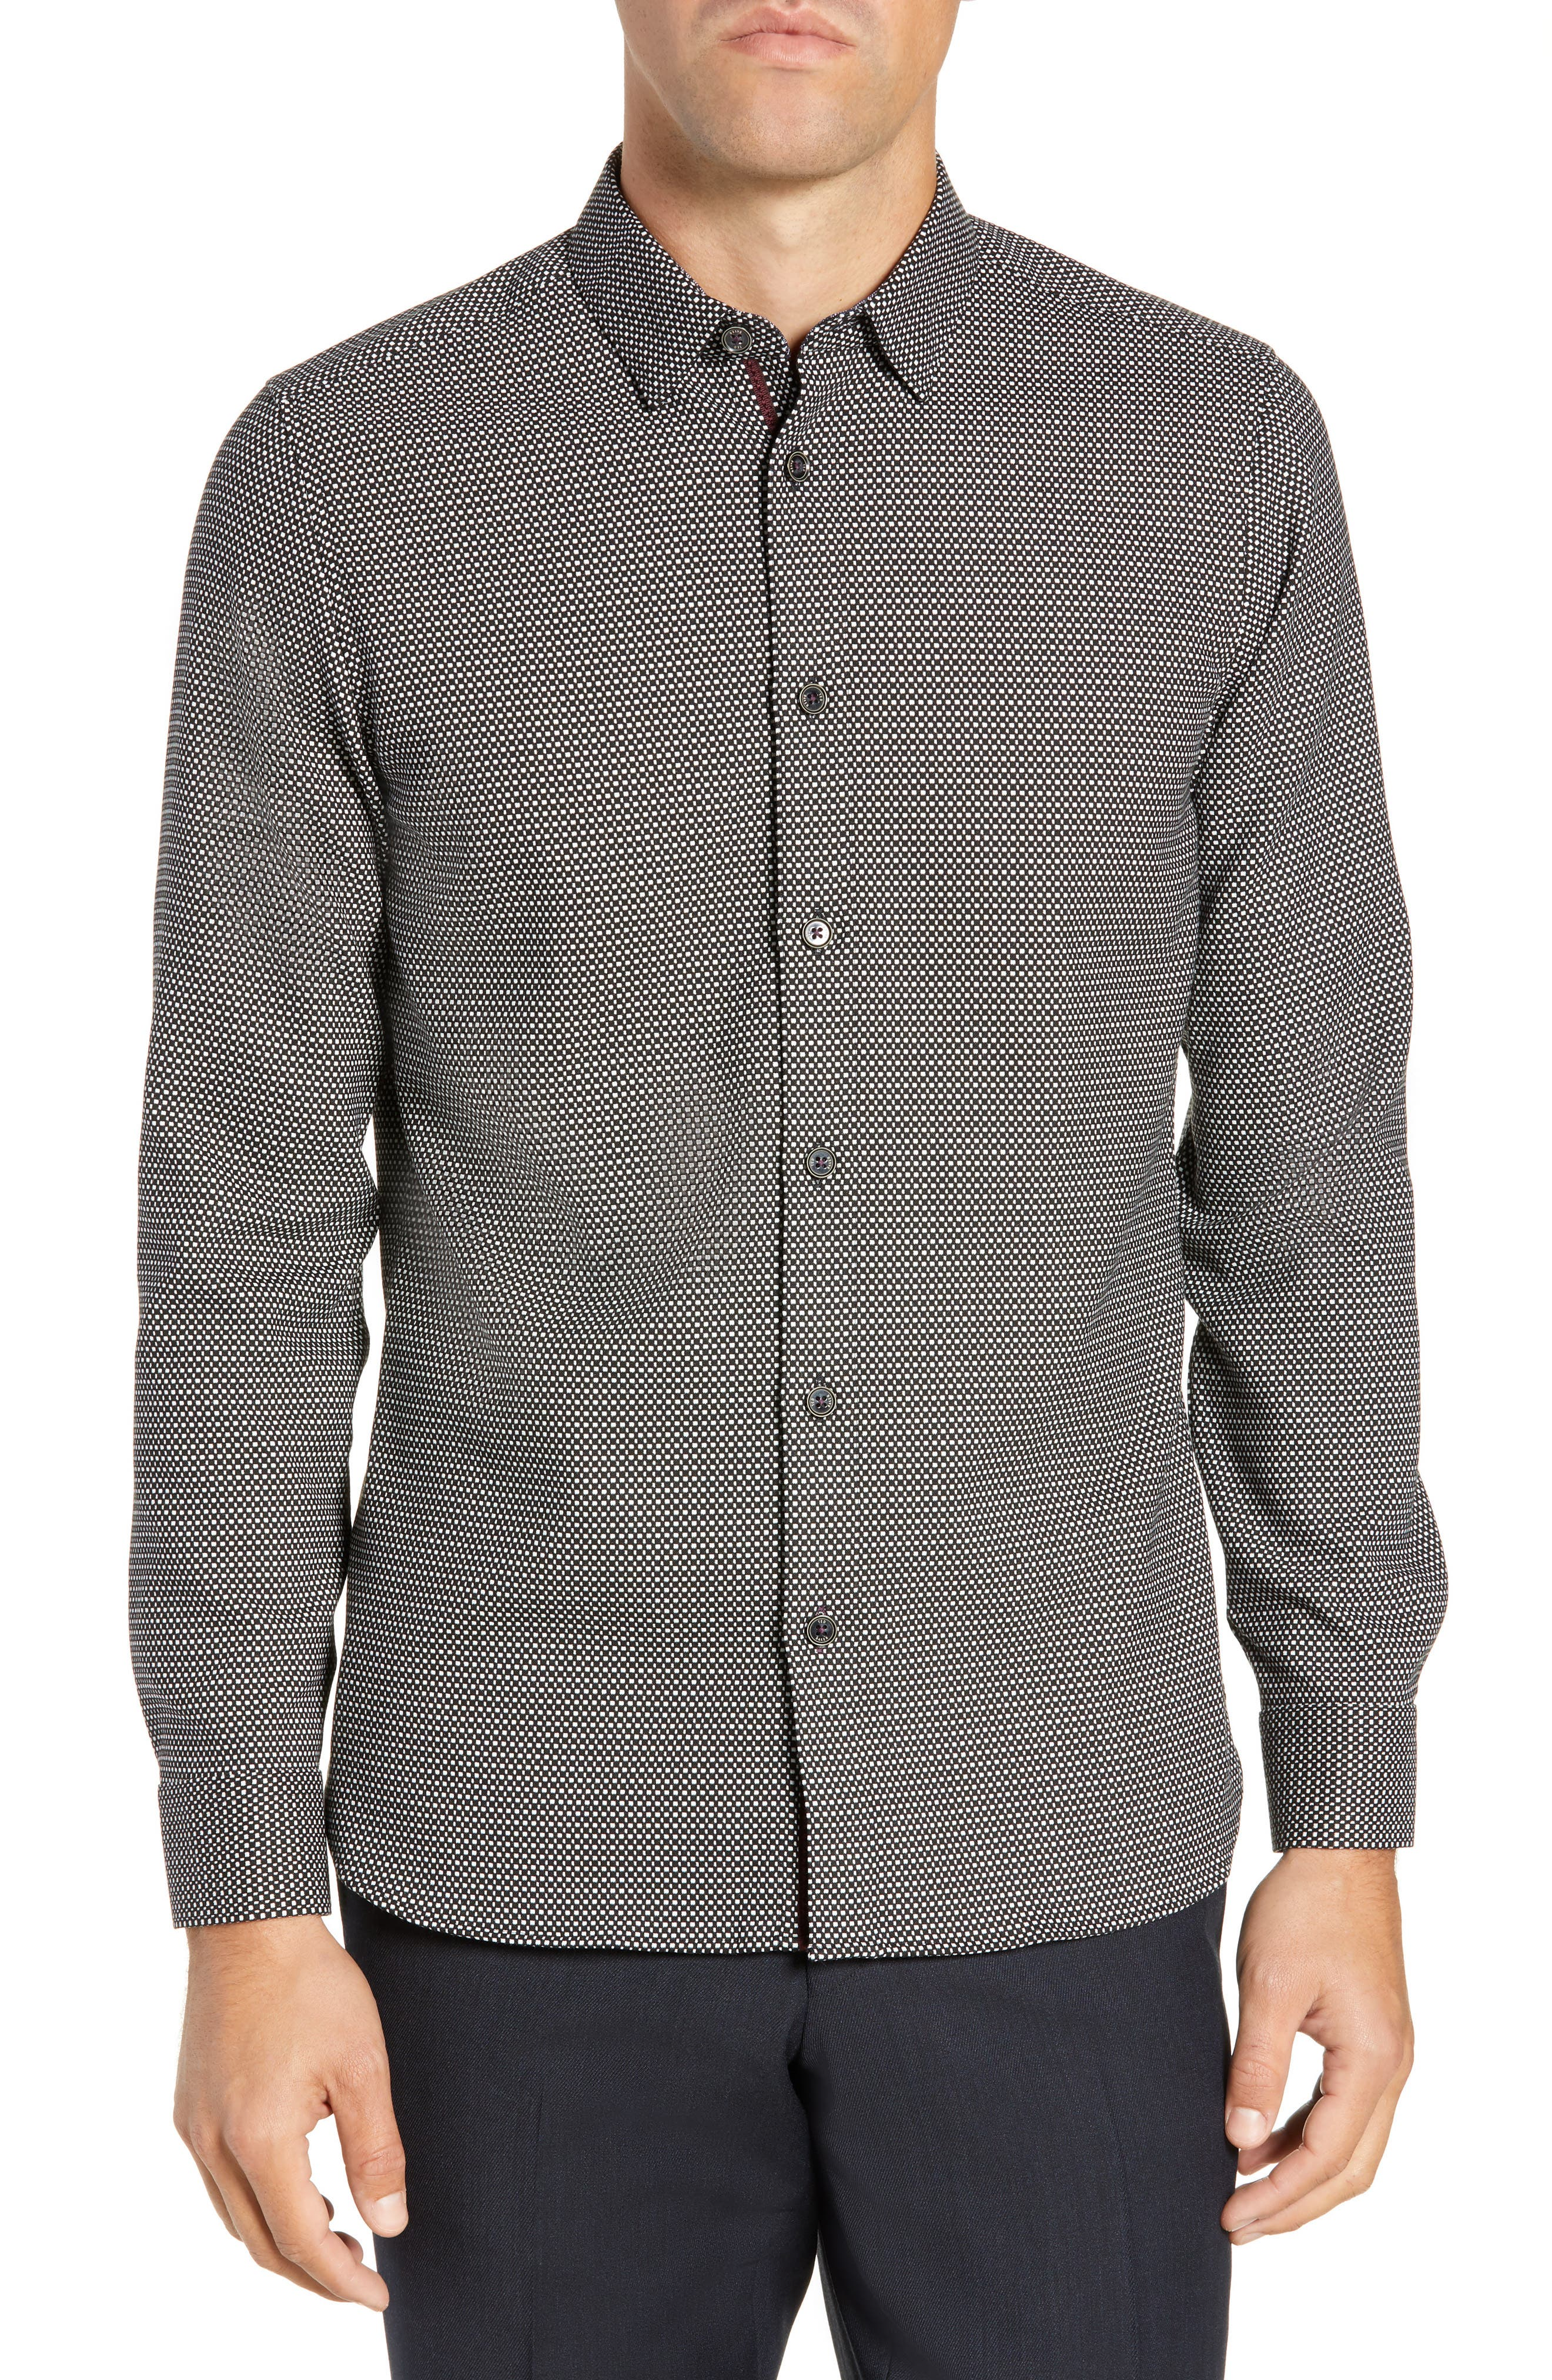 Wapping Slim Fit Textured Shirt,                         Main,                         color, BLACK